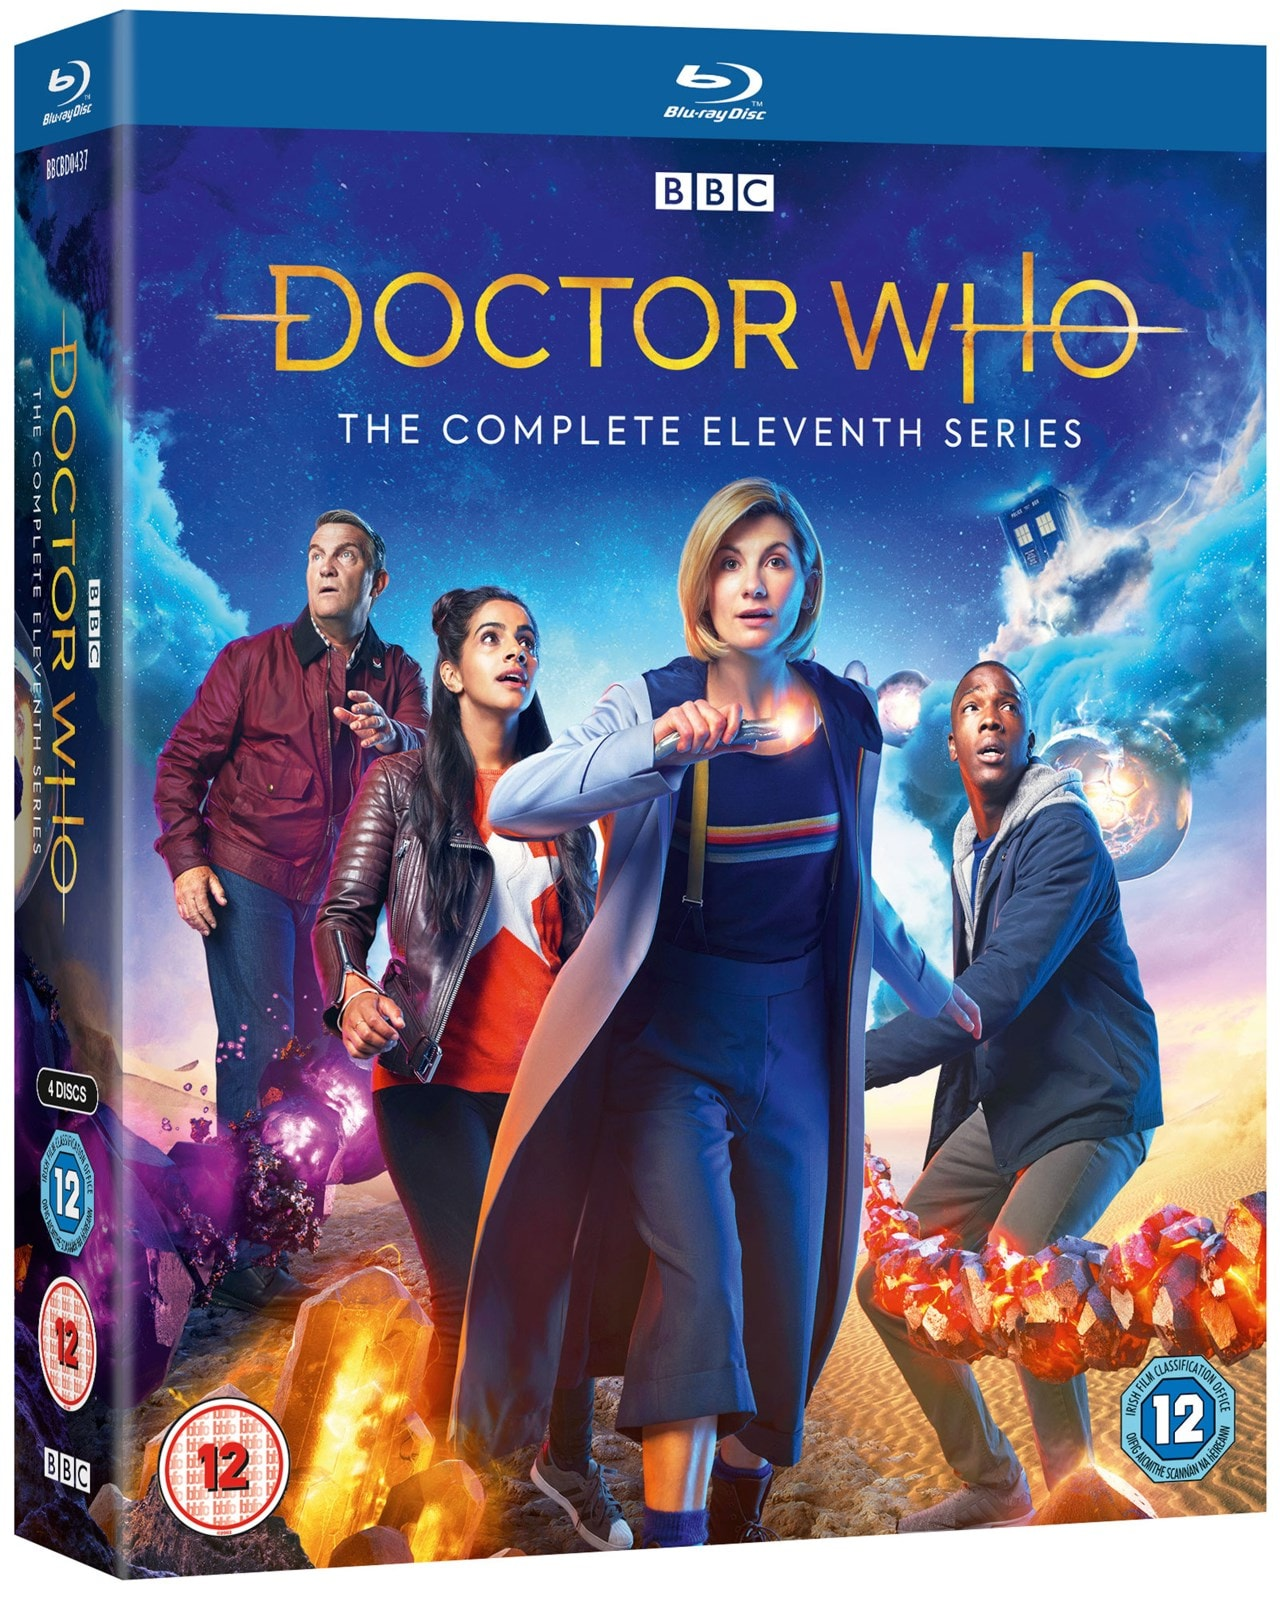 Doctor Who: The Complete Eleventh Series - 2